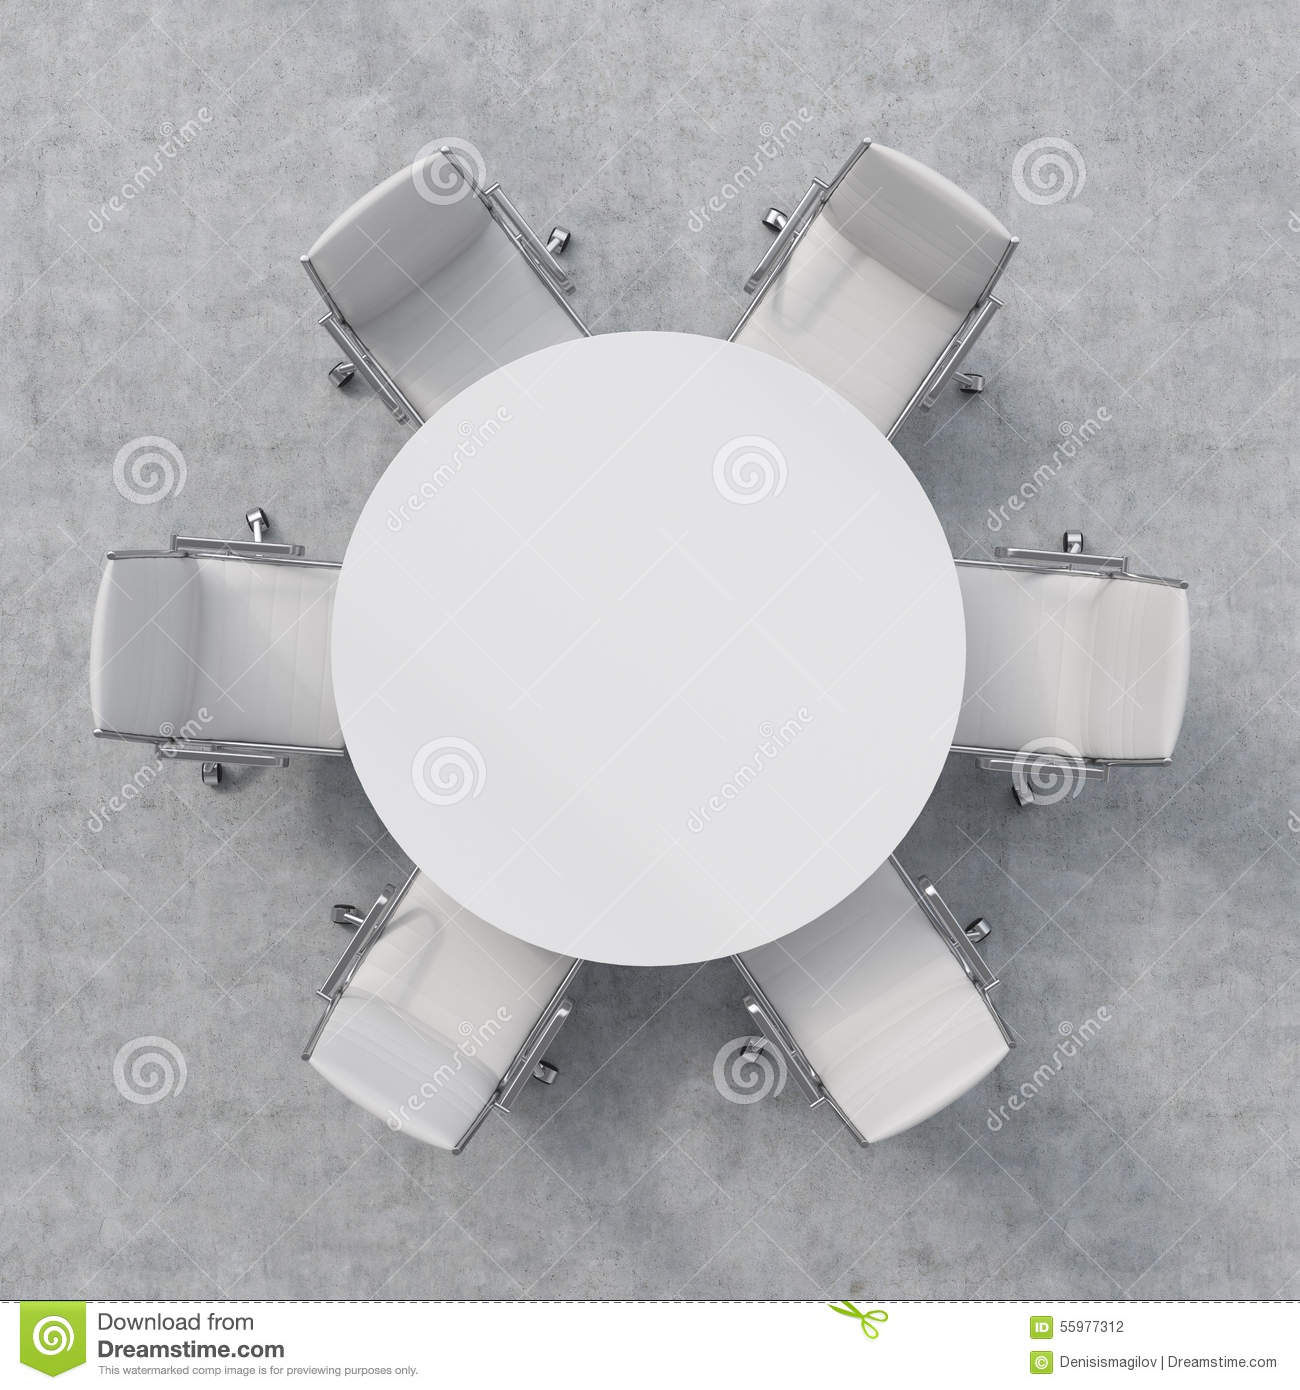 Top View Of A Conference Room White Round Table And Six Chairs